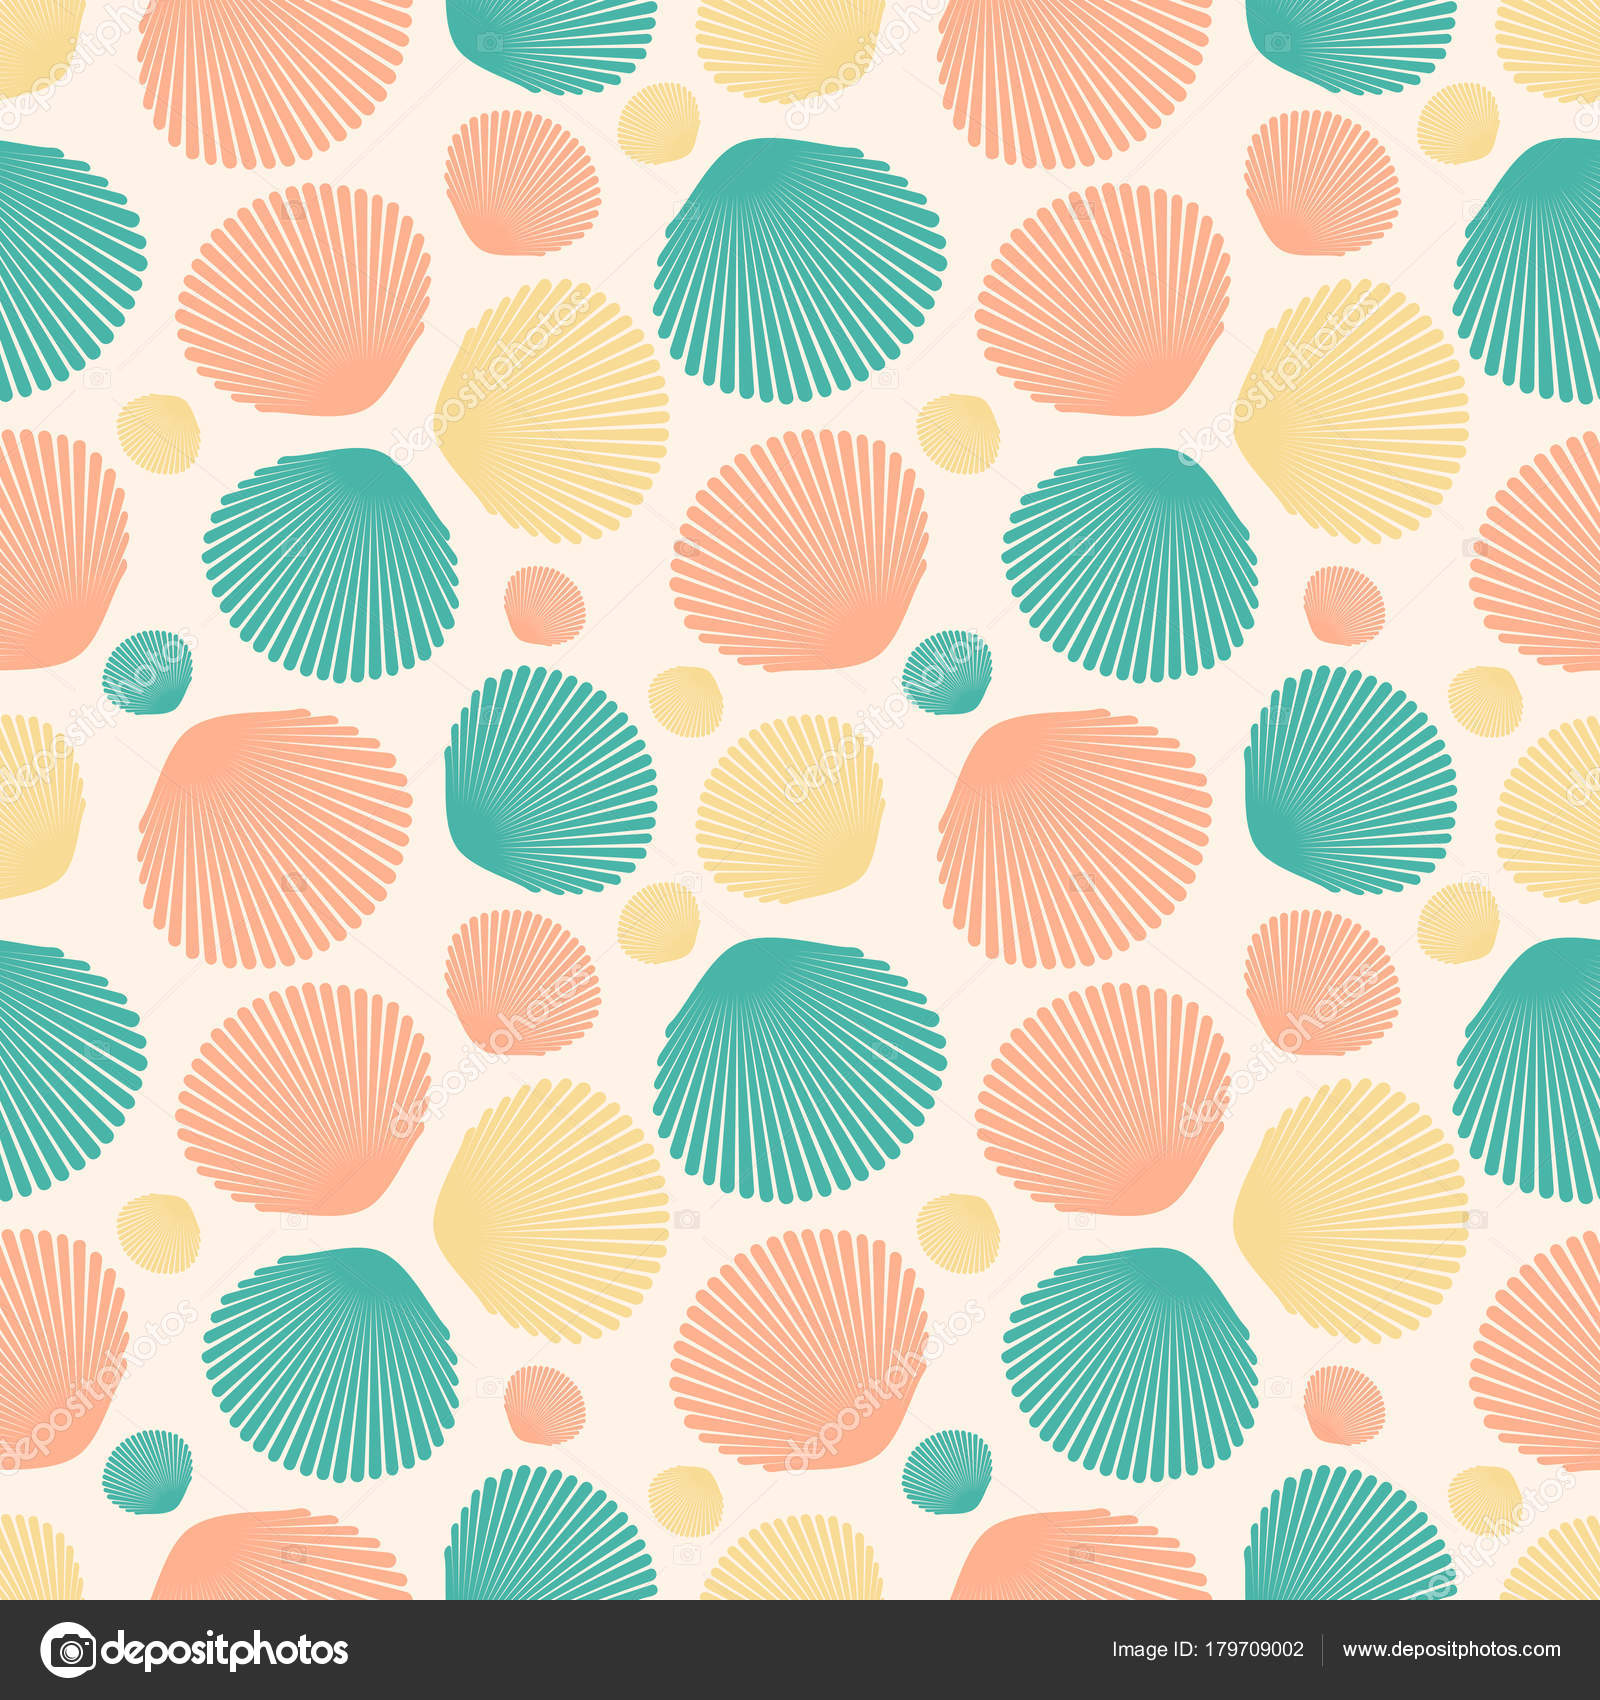 Seamless Pattern With Colorful Seashells For Wrapping Paper